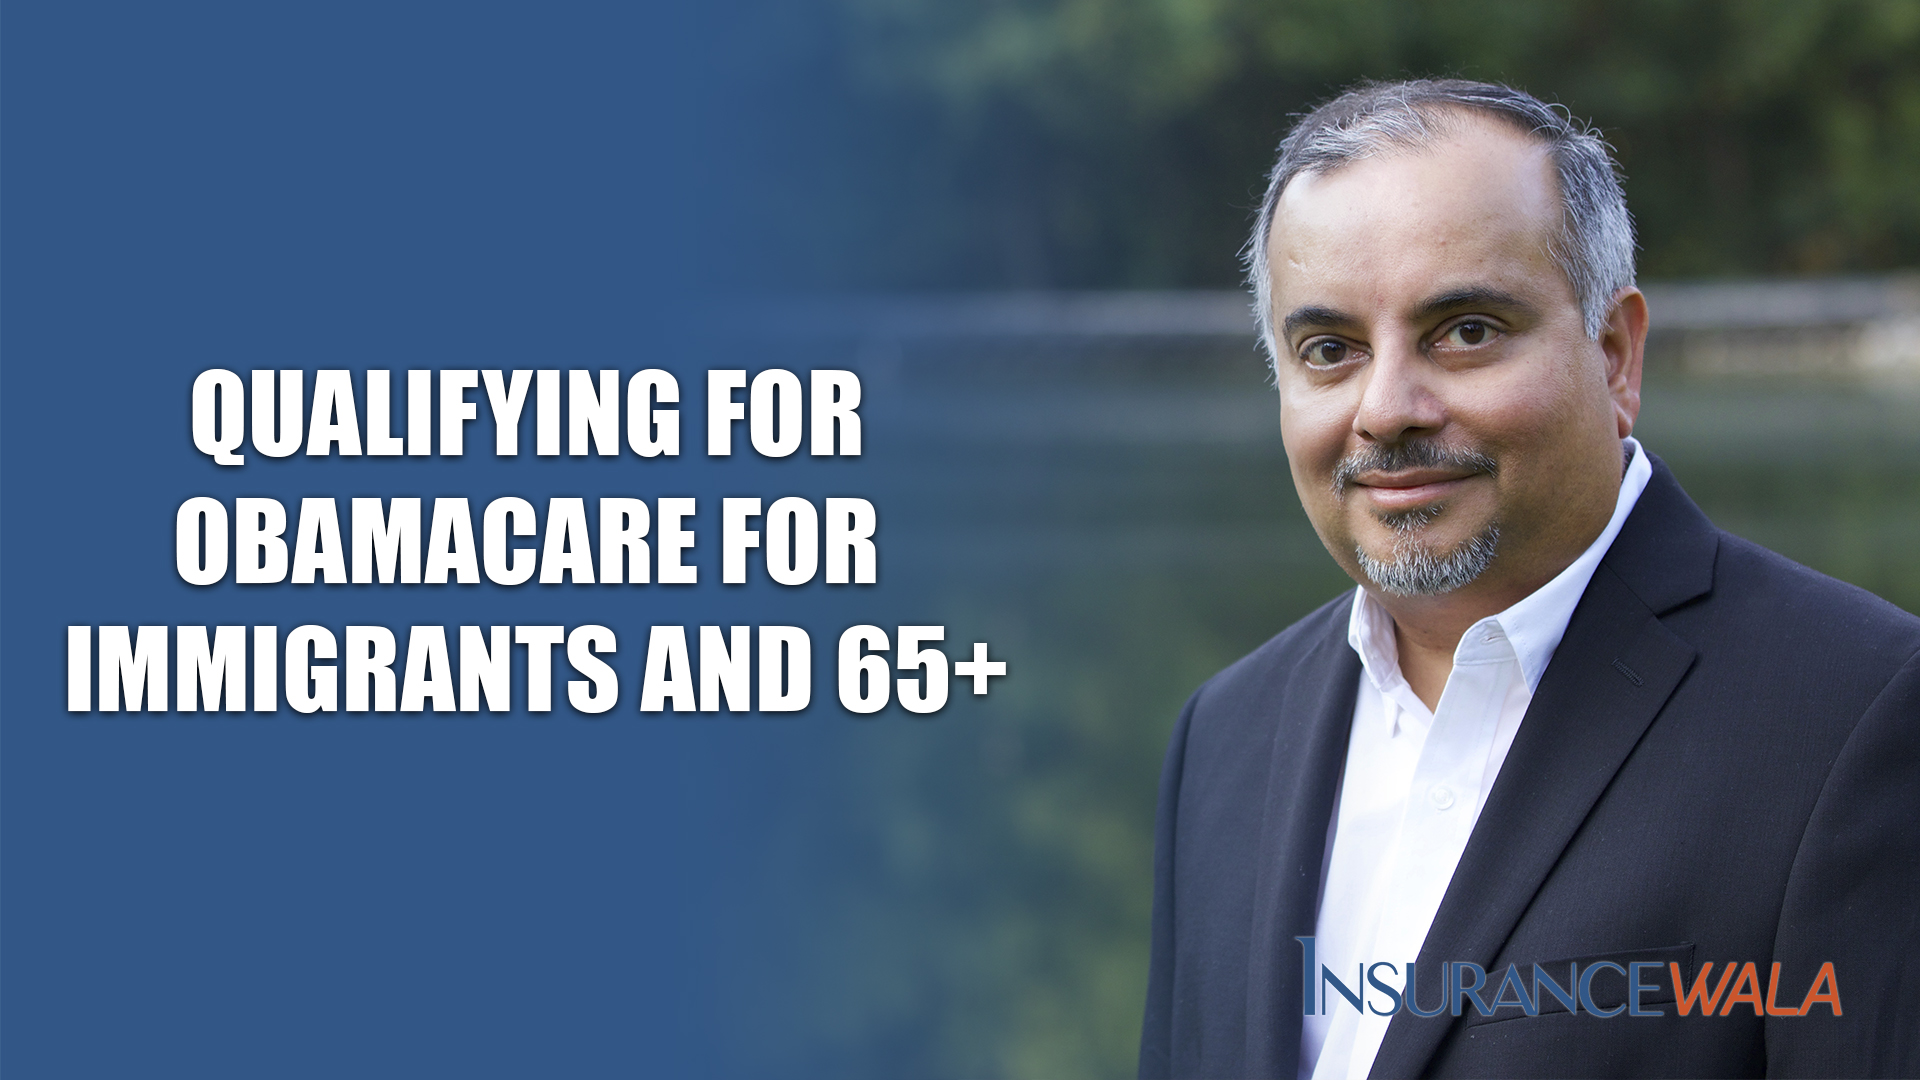 Obamacare for Immigrants and 65+